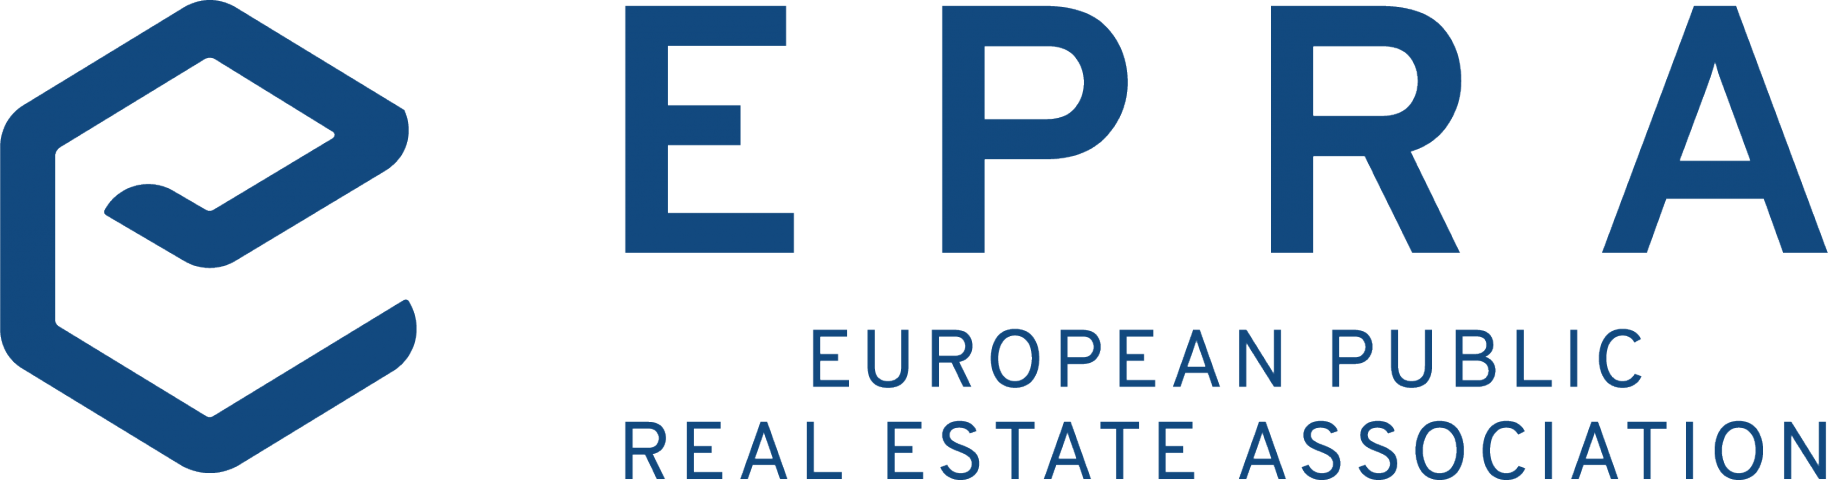 EPRA-logo-horizontal-lockup-blue